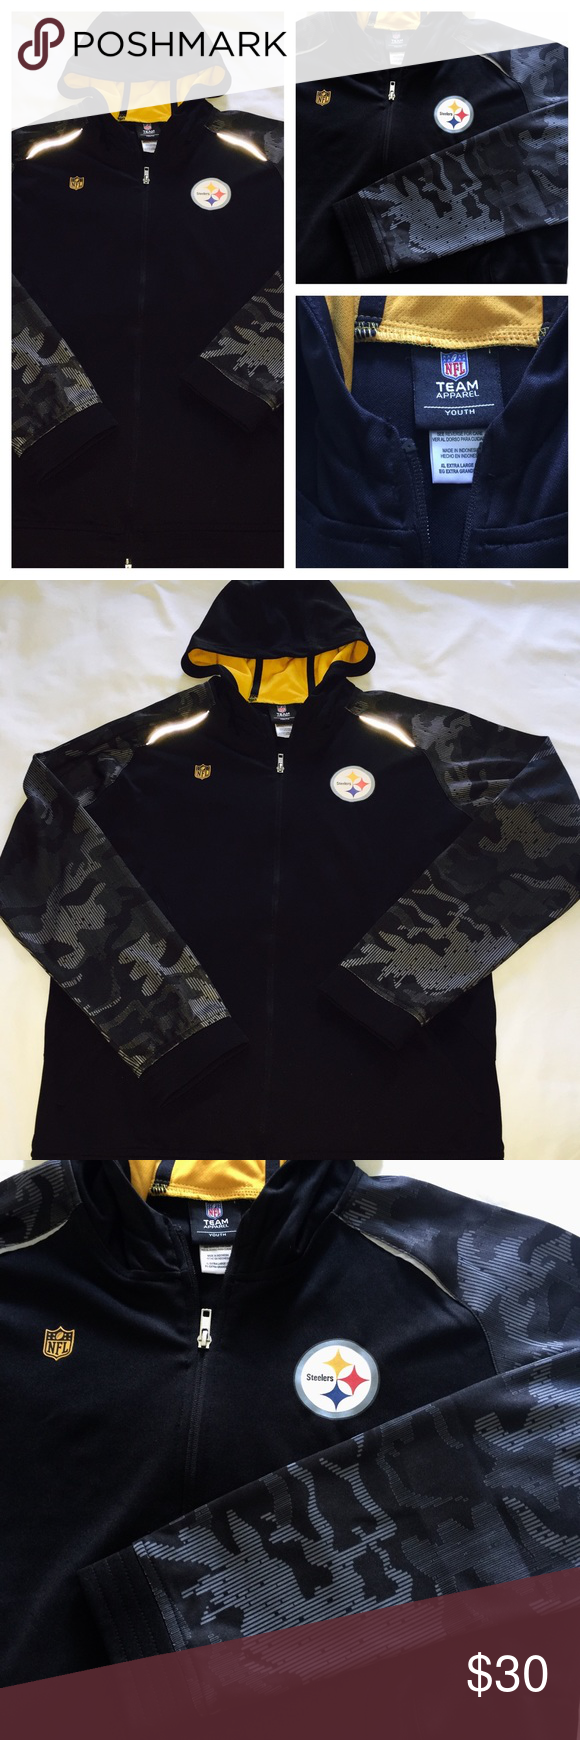 huge selection of 2c87b afb2d NFL Pittsburgh Steelers jacket XL youth 18 boys NFL Team ...